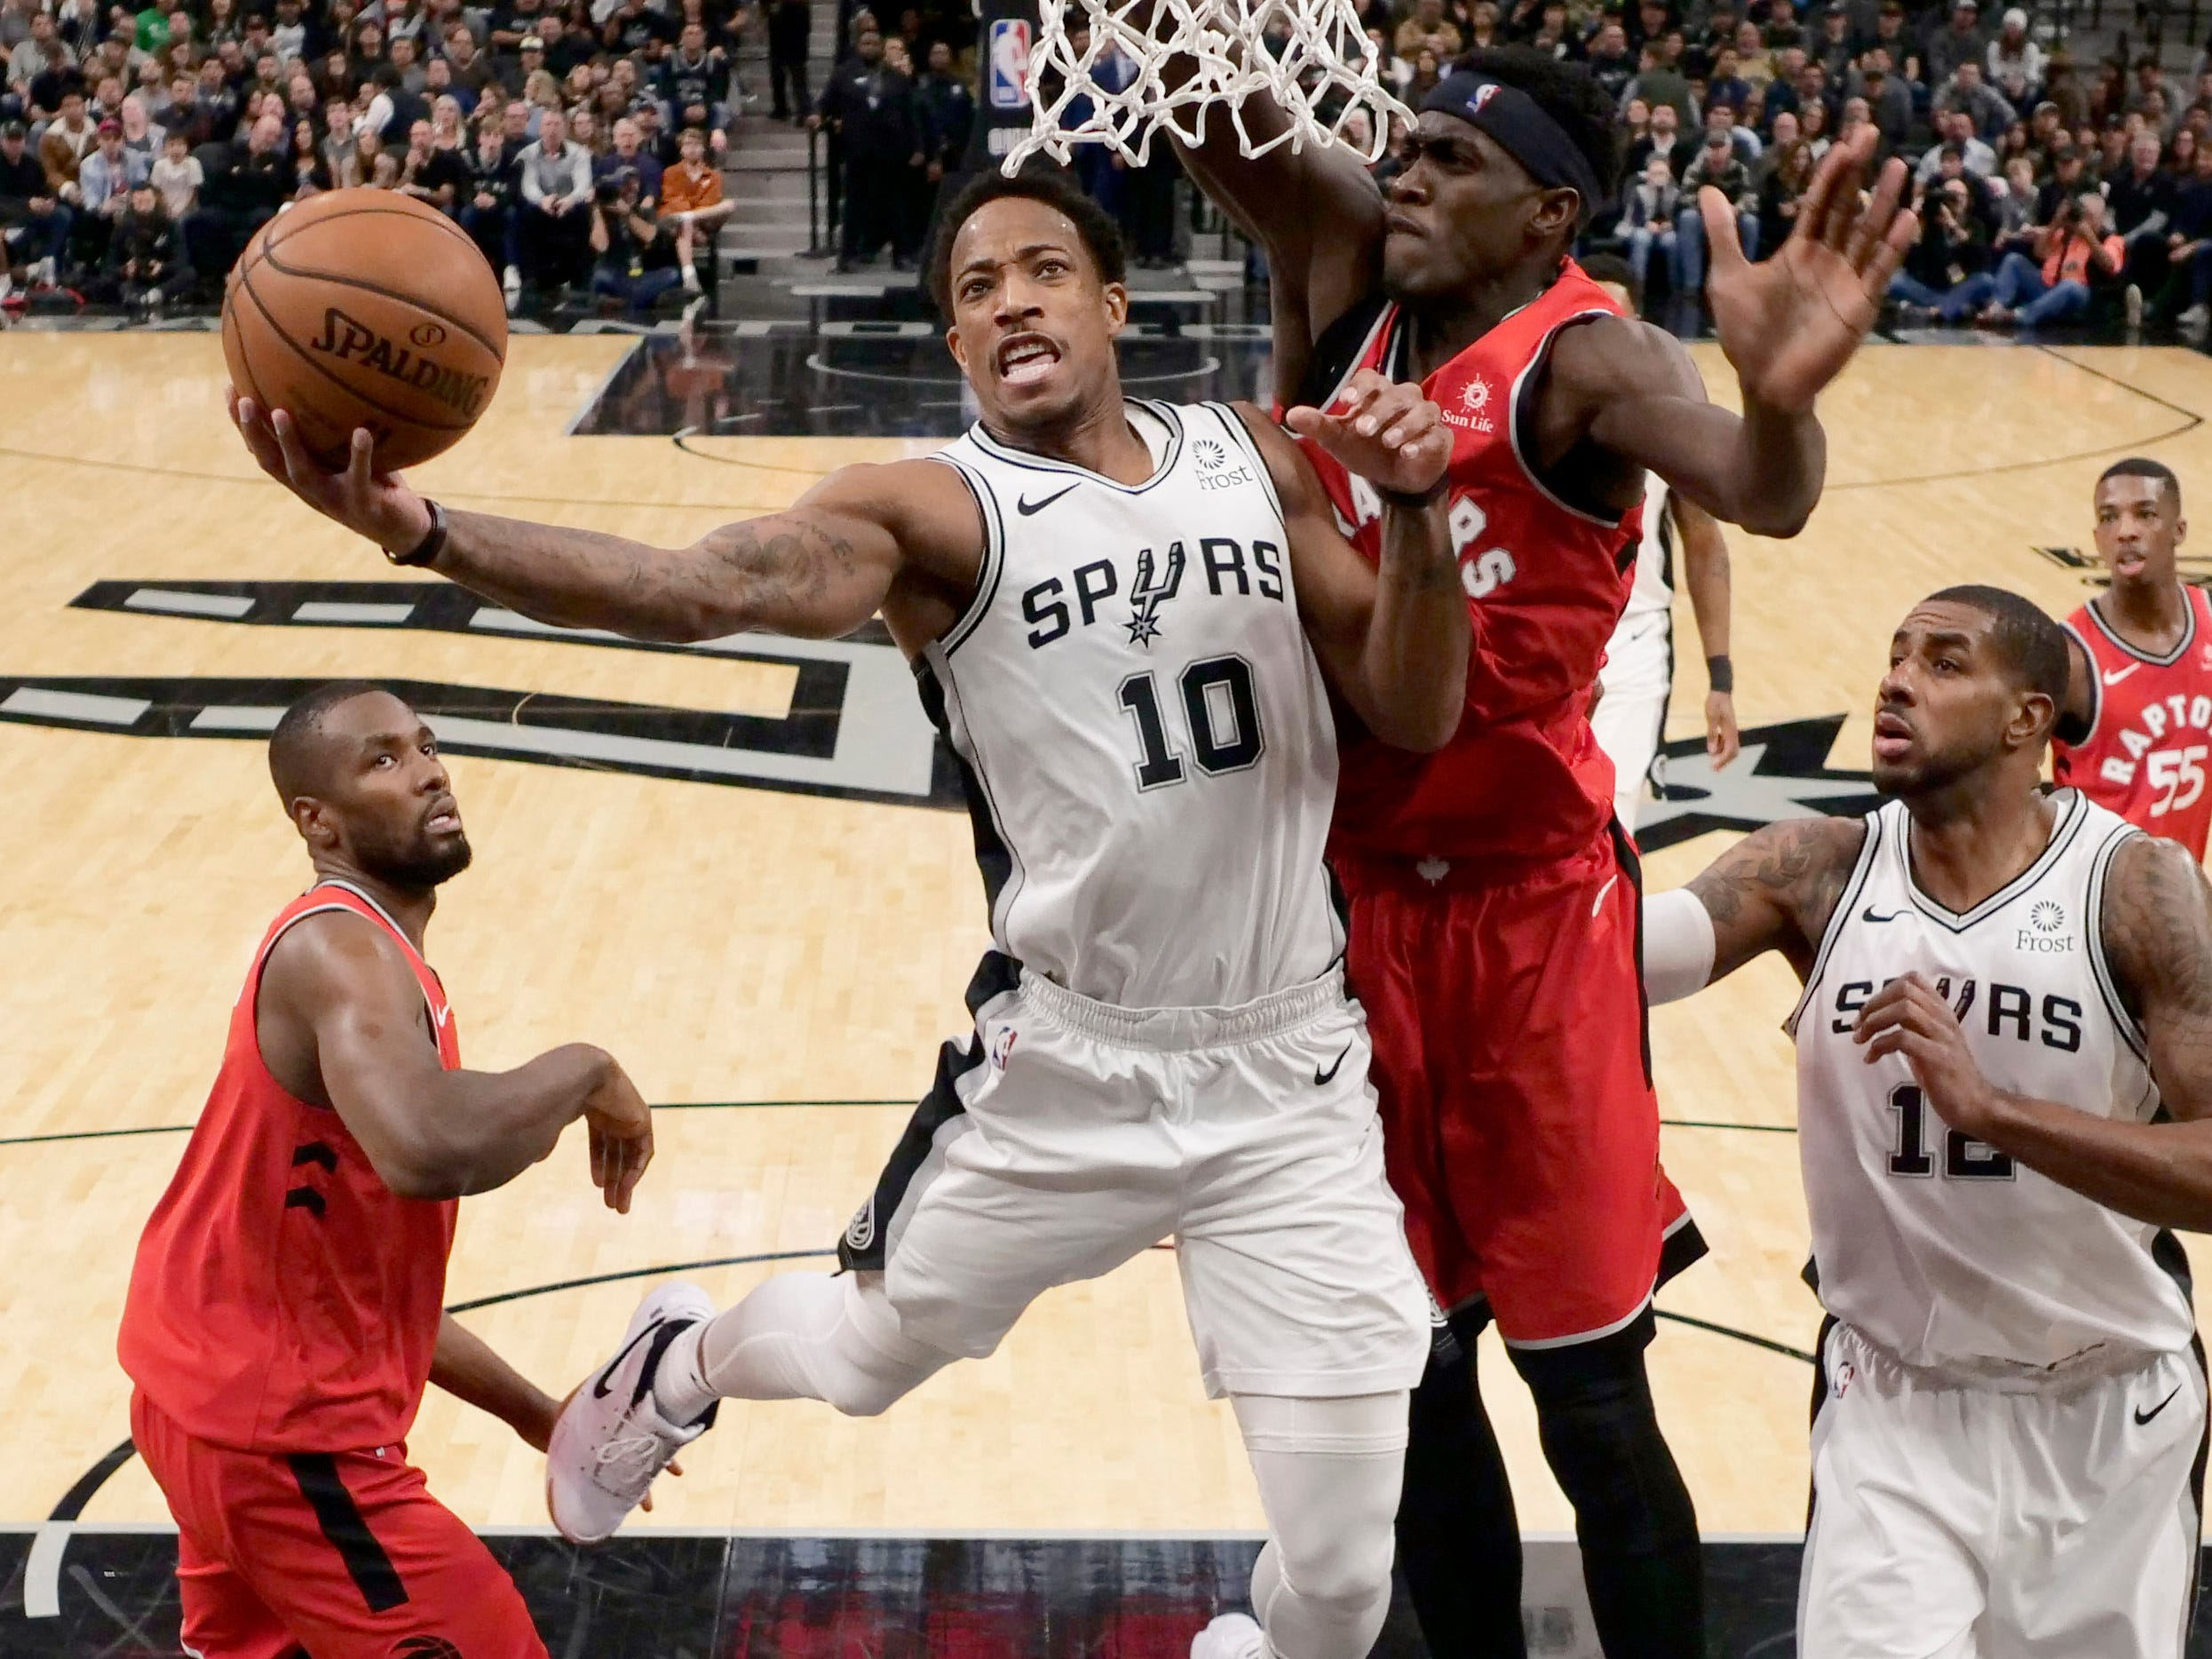 42. DeMar DeRozan, Spurs (Jan. 3): 21 points, 14 rebounds, 11 assists in 125-107 win over Raptors.